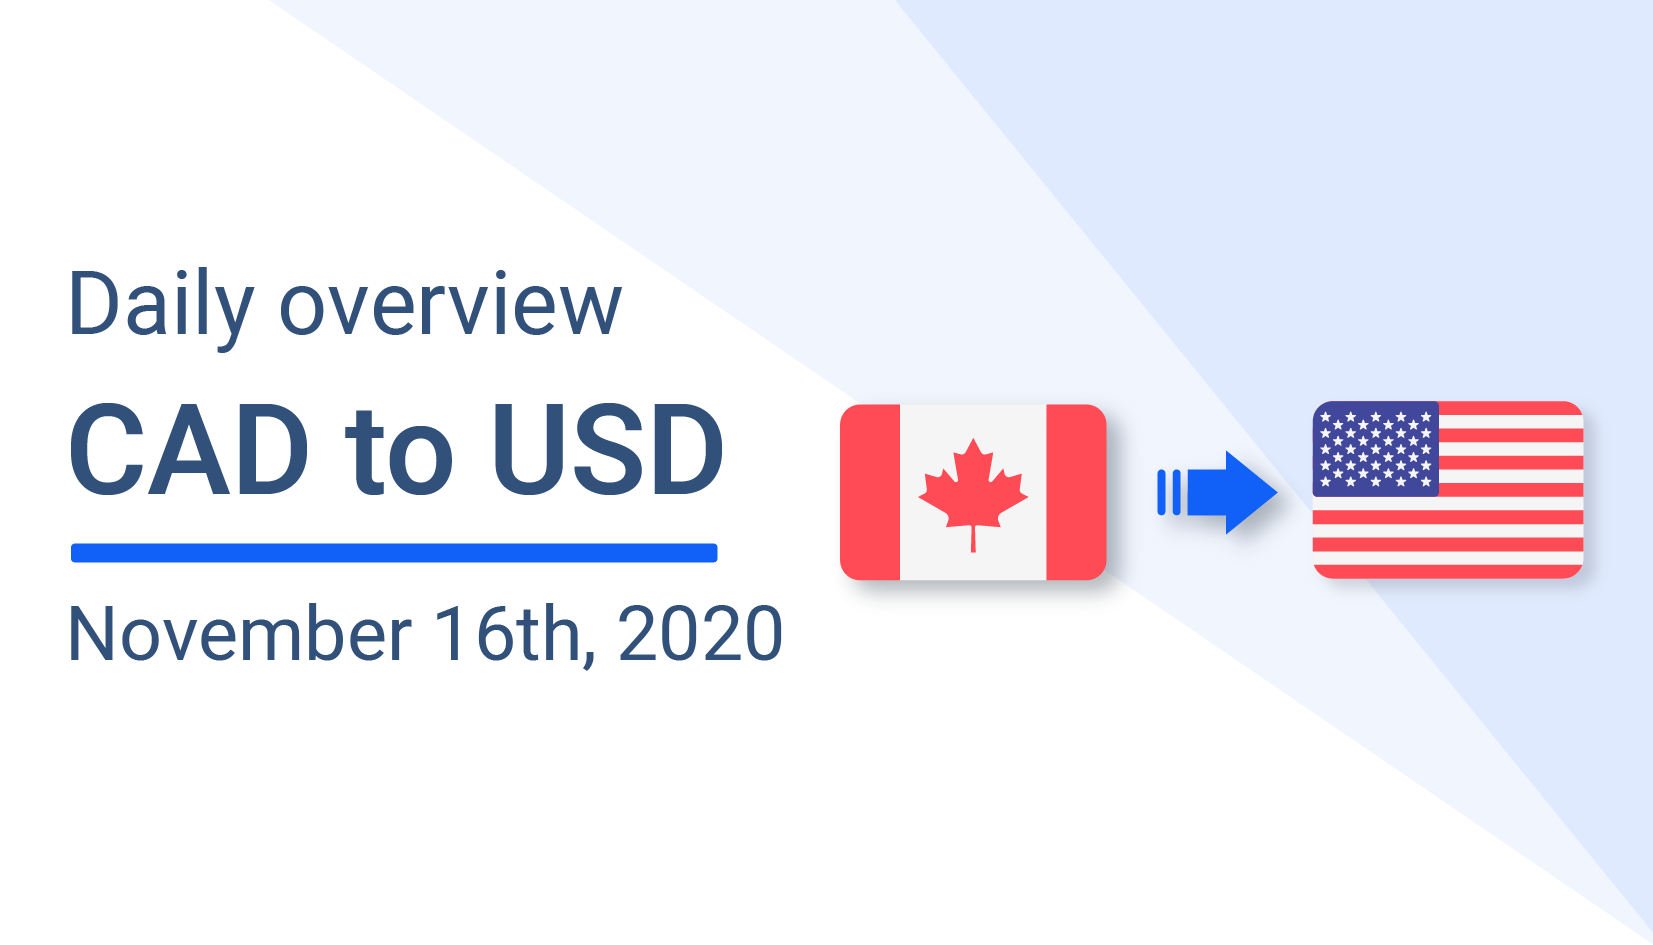 USD to CAD Daily Overview: November 16th